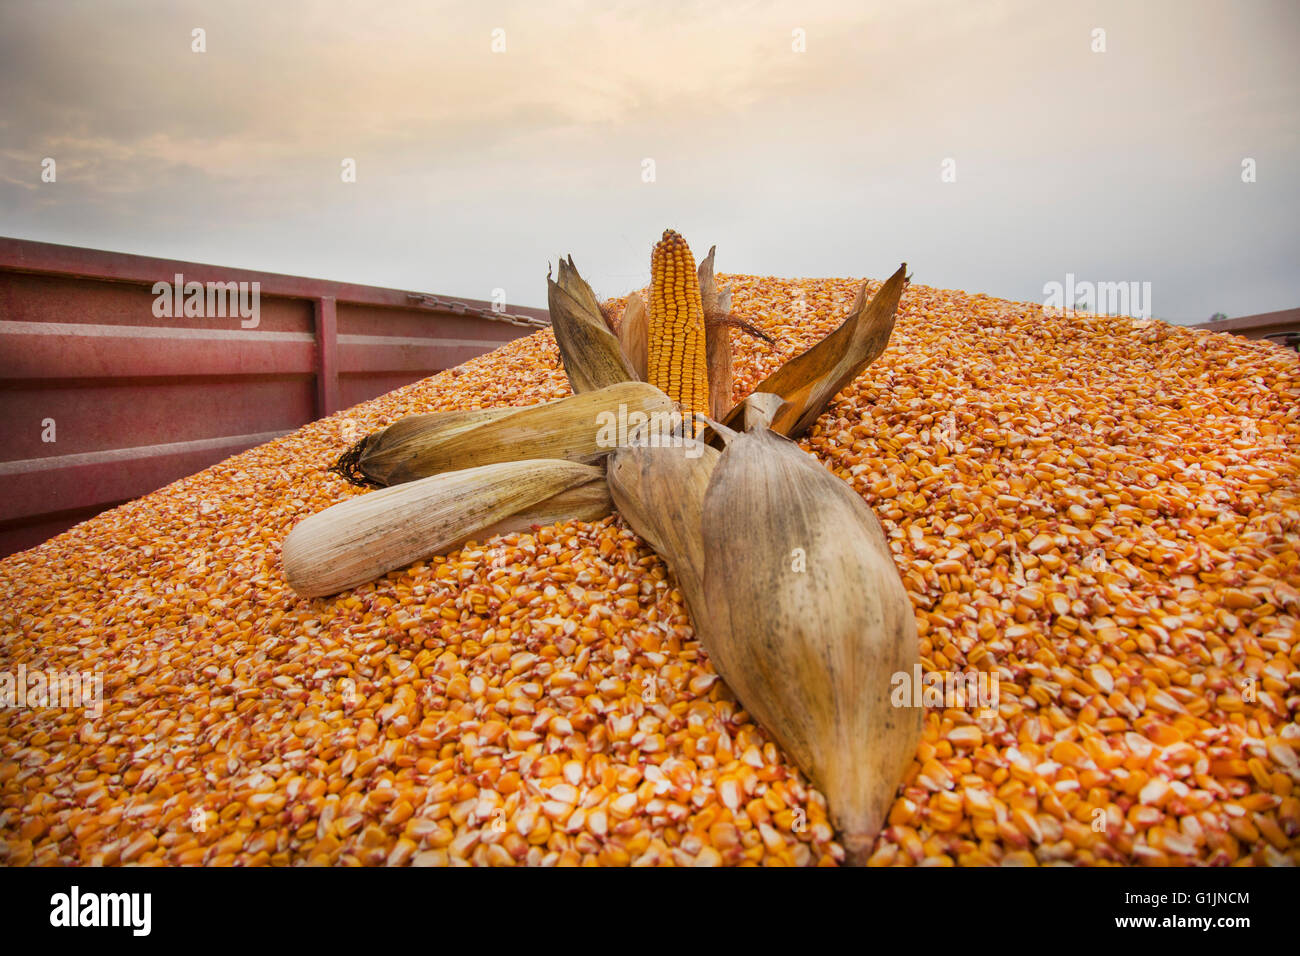 Corn ears on corn seeds in tractor trailer ready for transport. - Stock Image